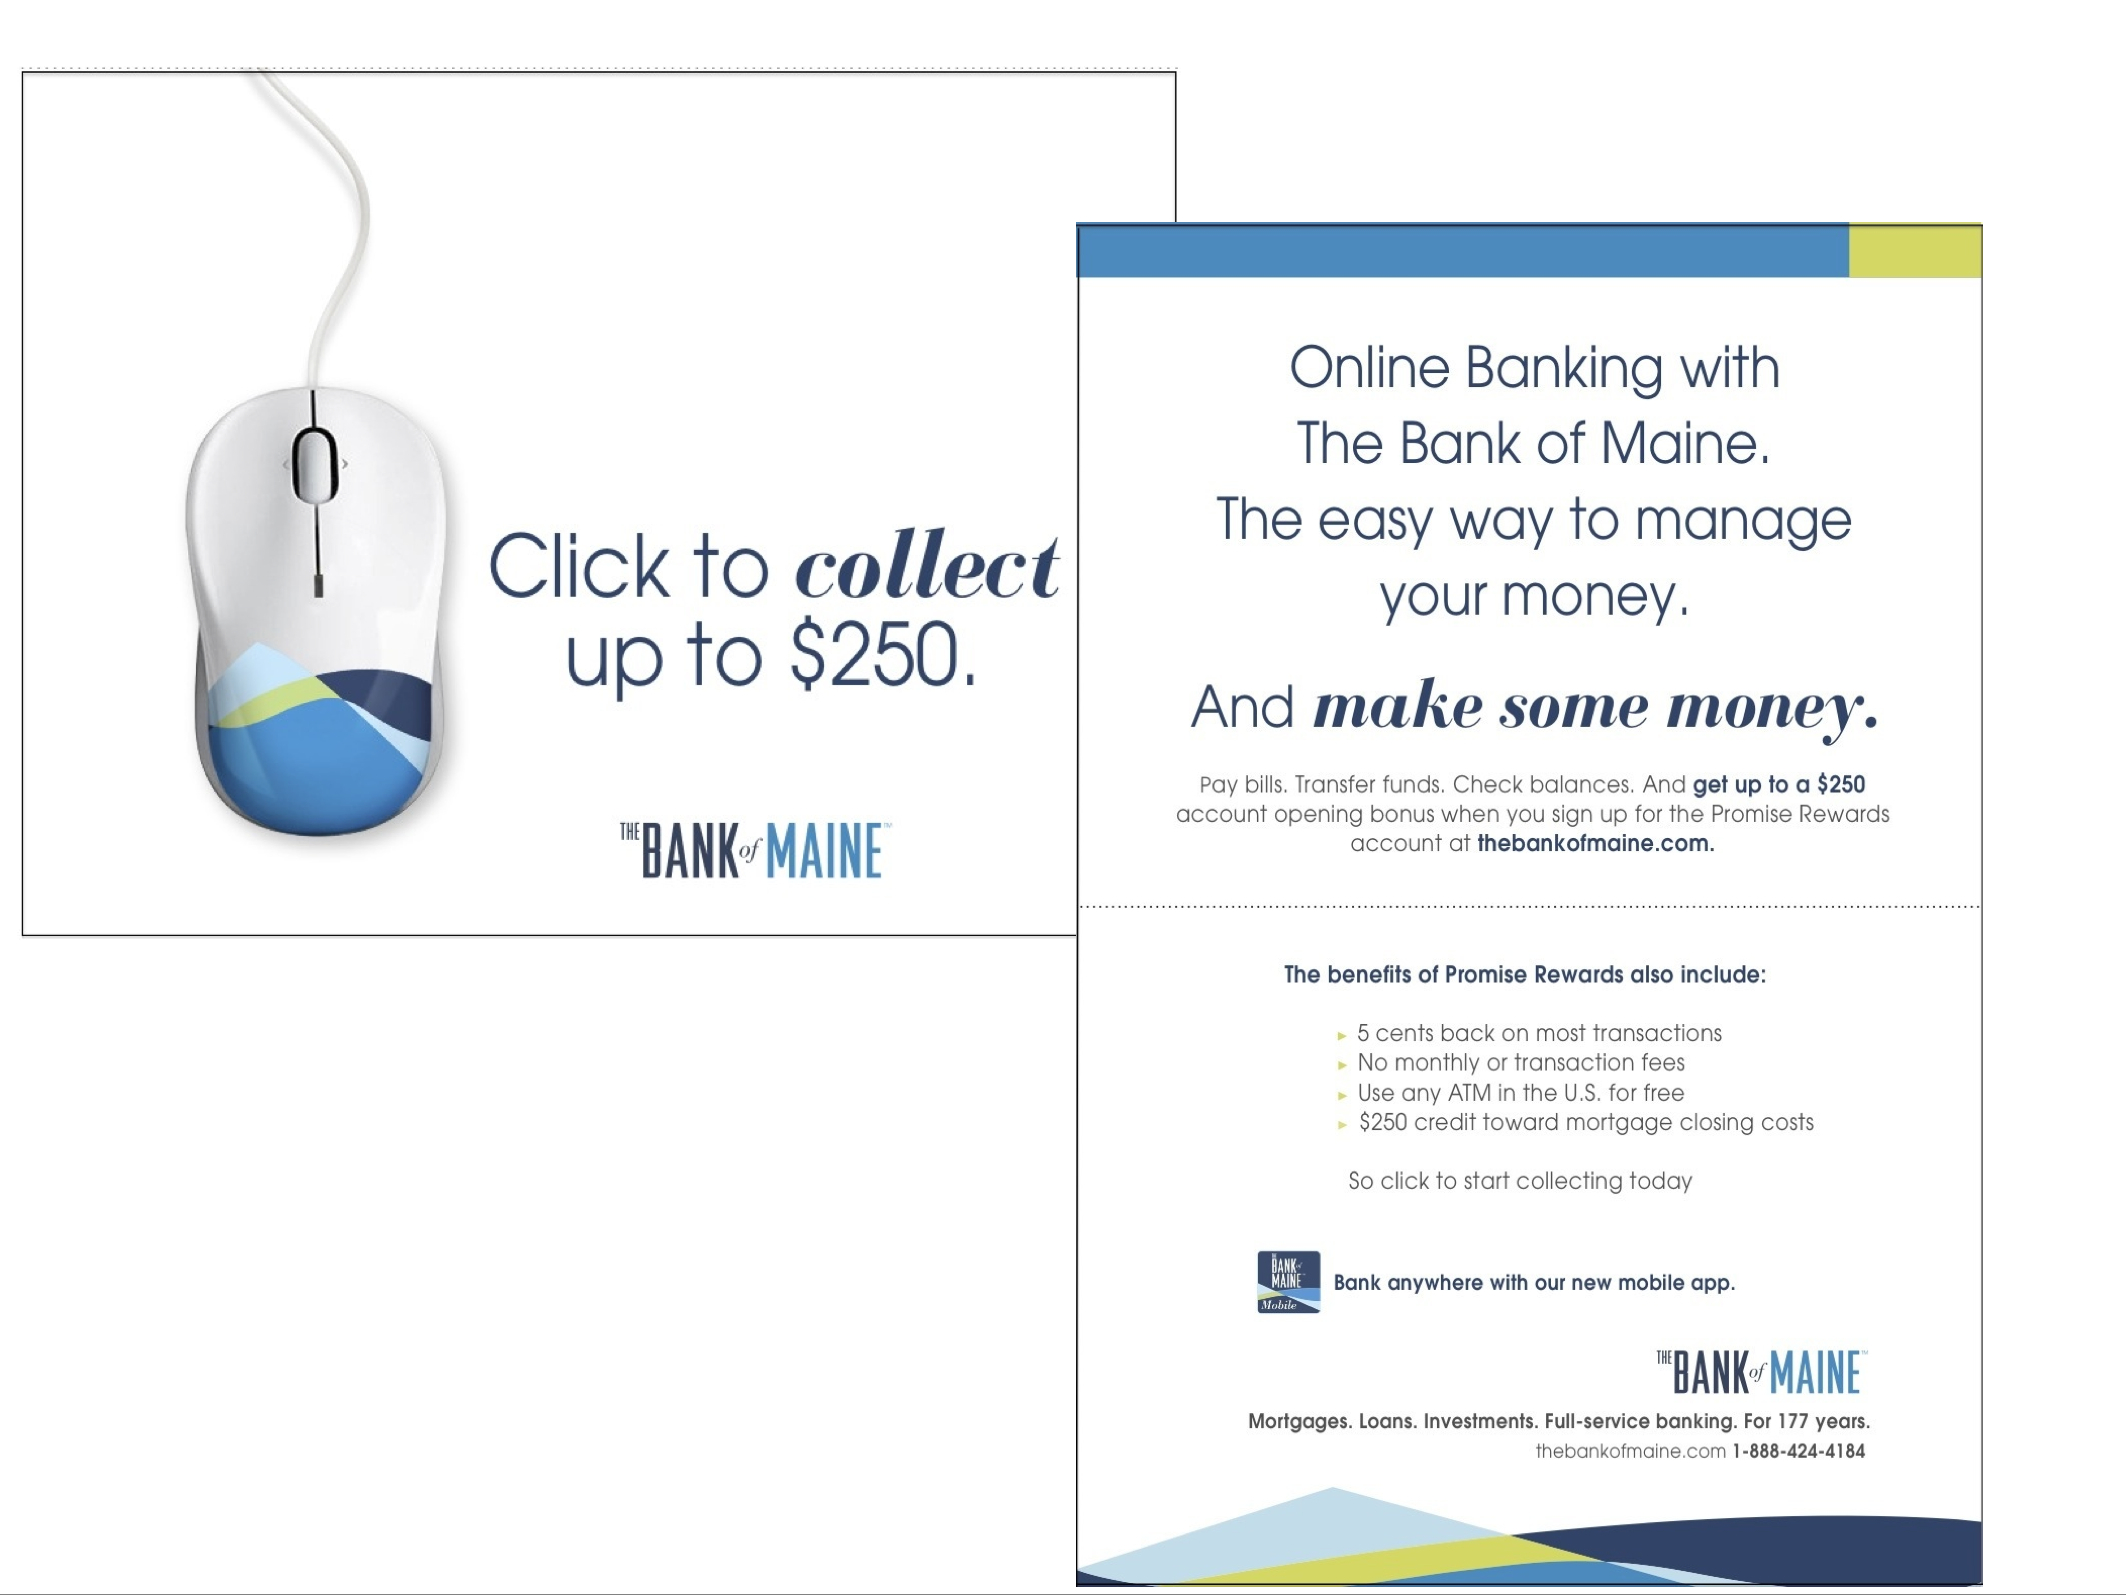 Mailer for The Bank of Maine